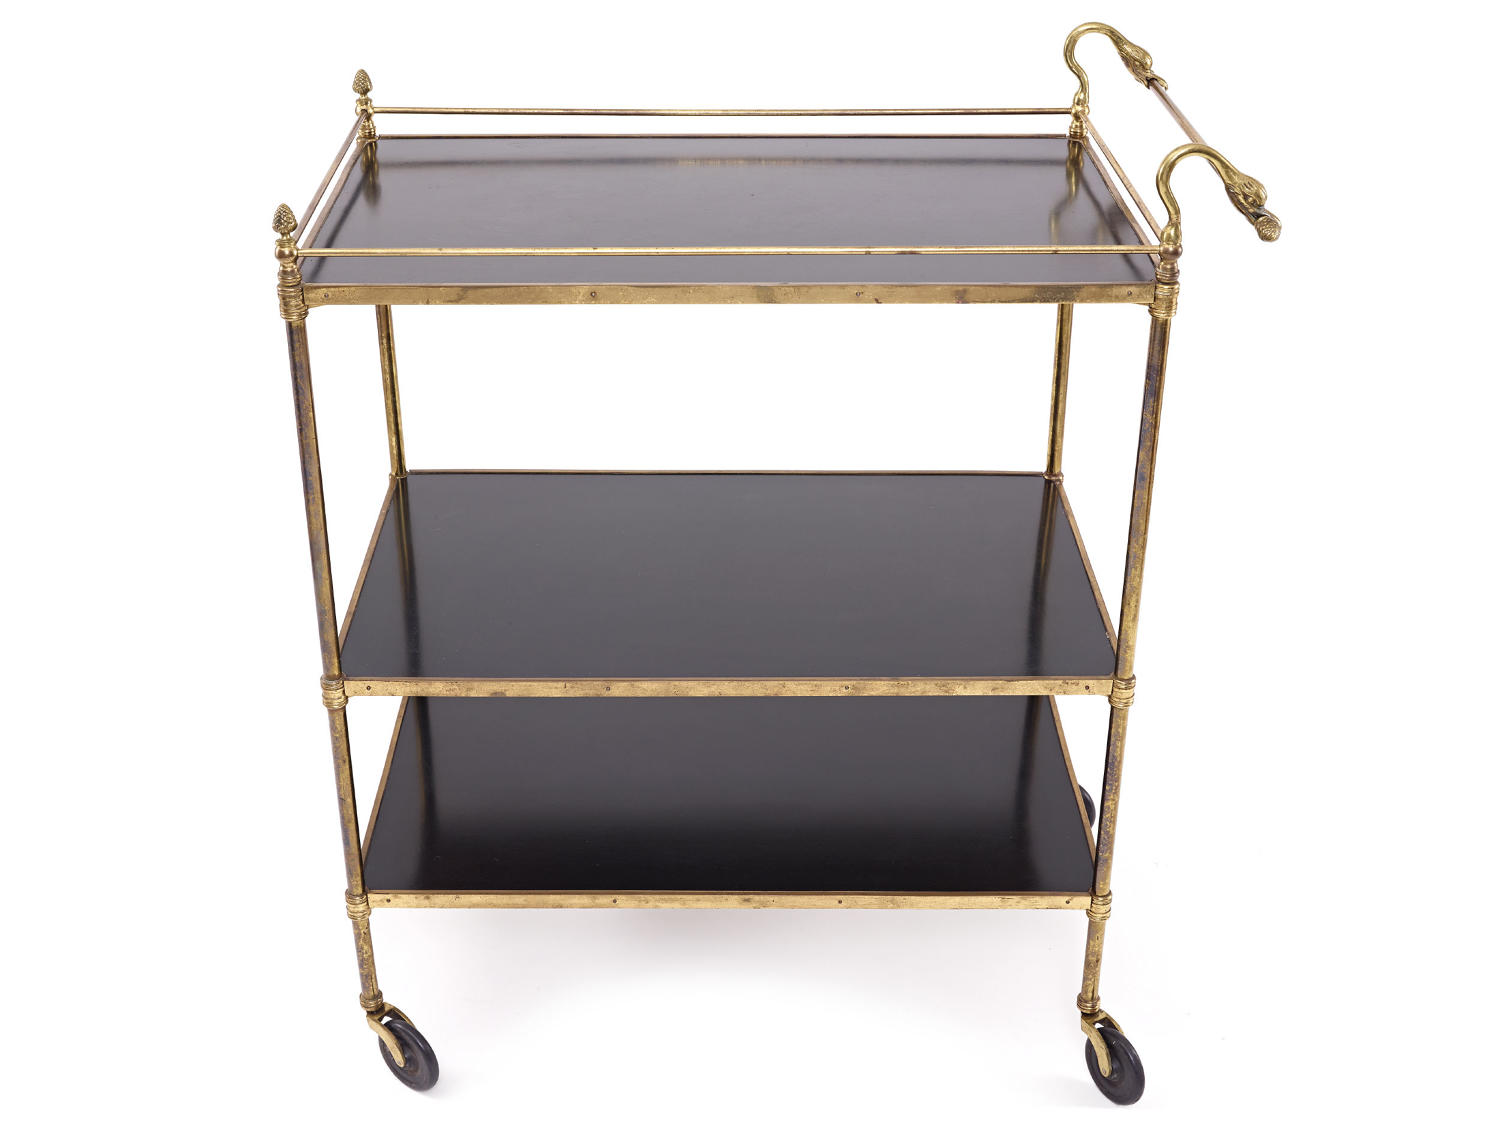 Brass and Black Lacquered Trolley